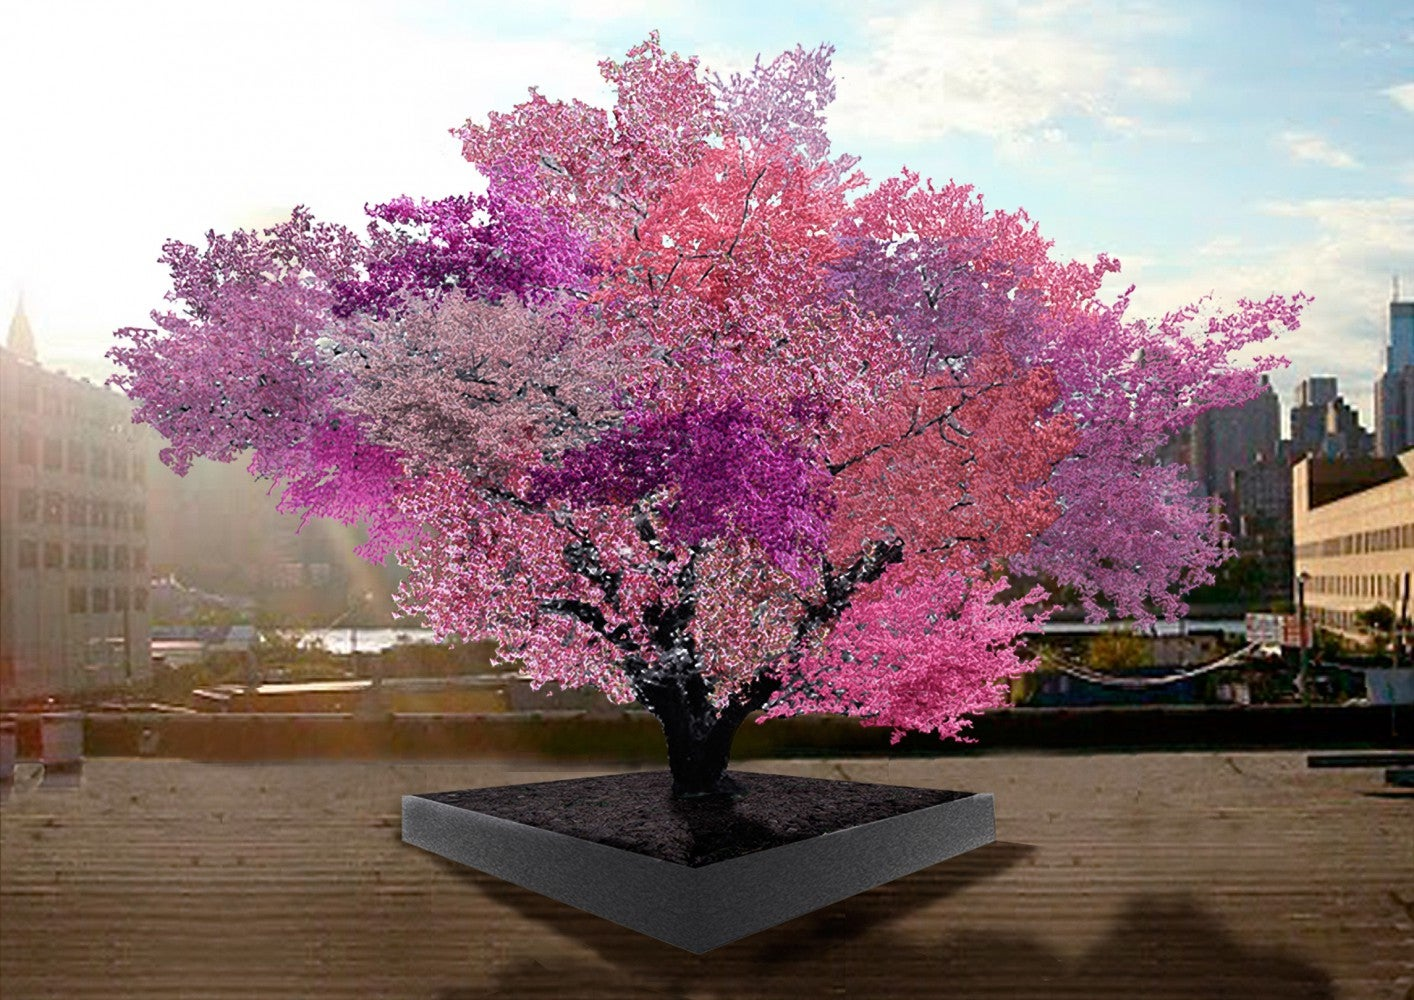 Amazing Trees Produce 40 Different Types Of Fruit